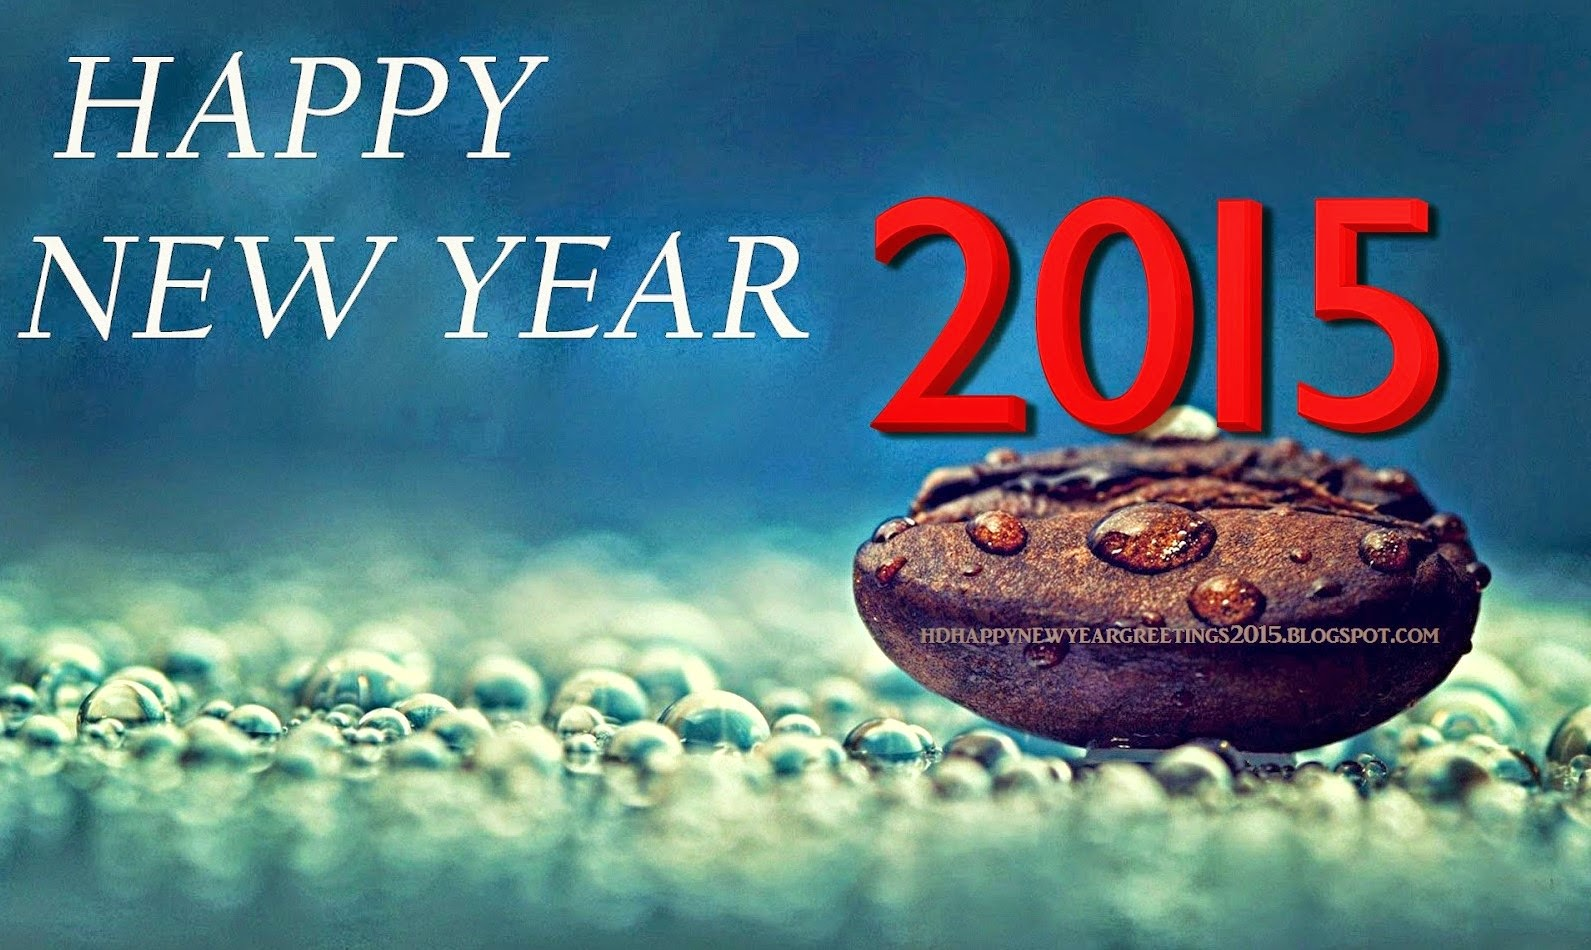 Happy New Year 2015 Messages In English & SMS Greetings